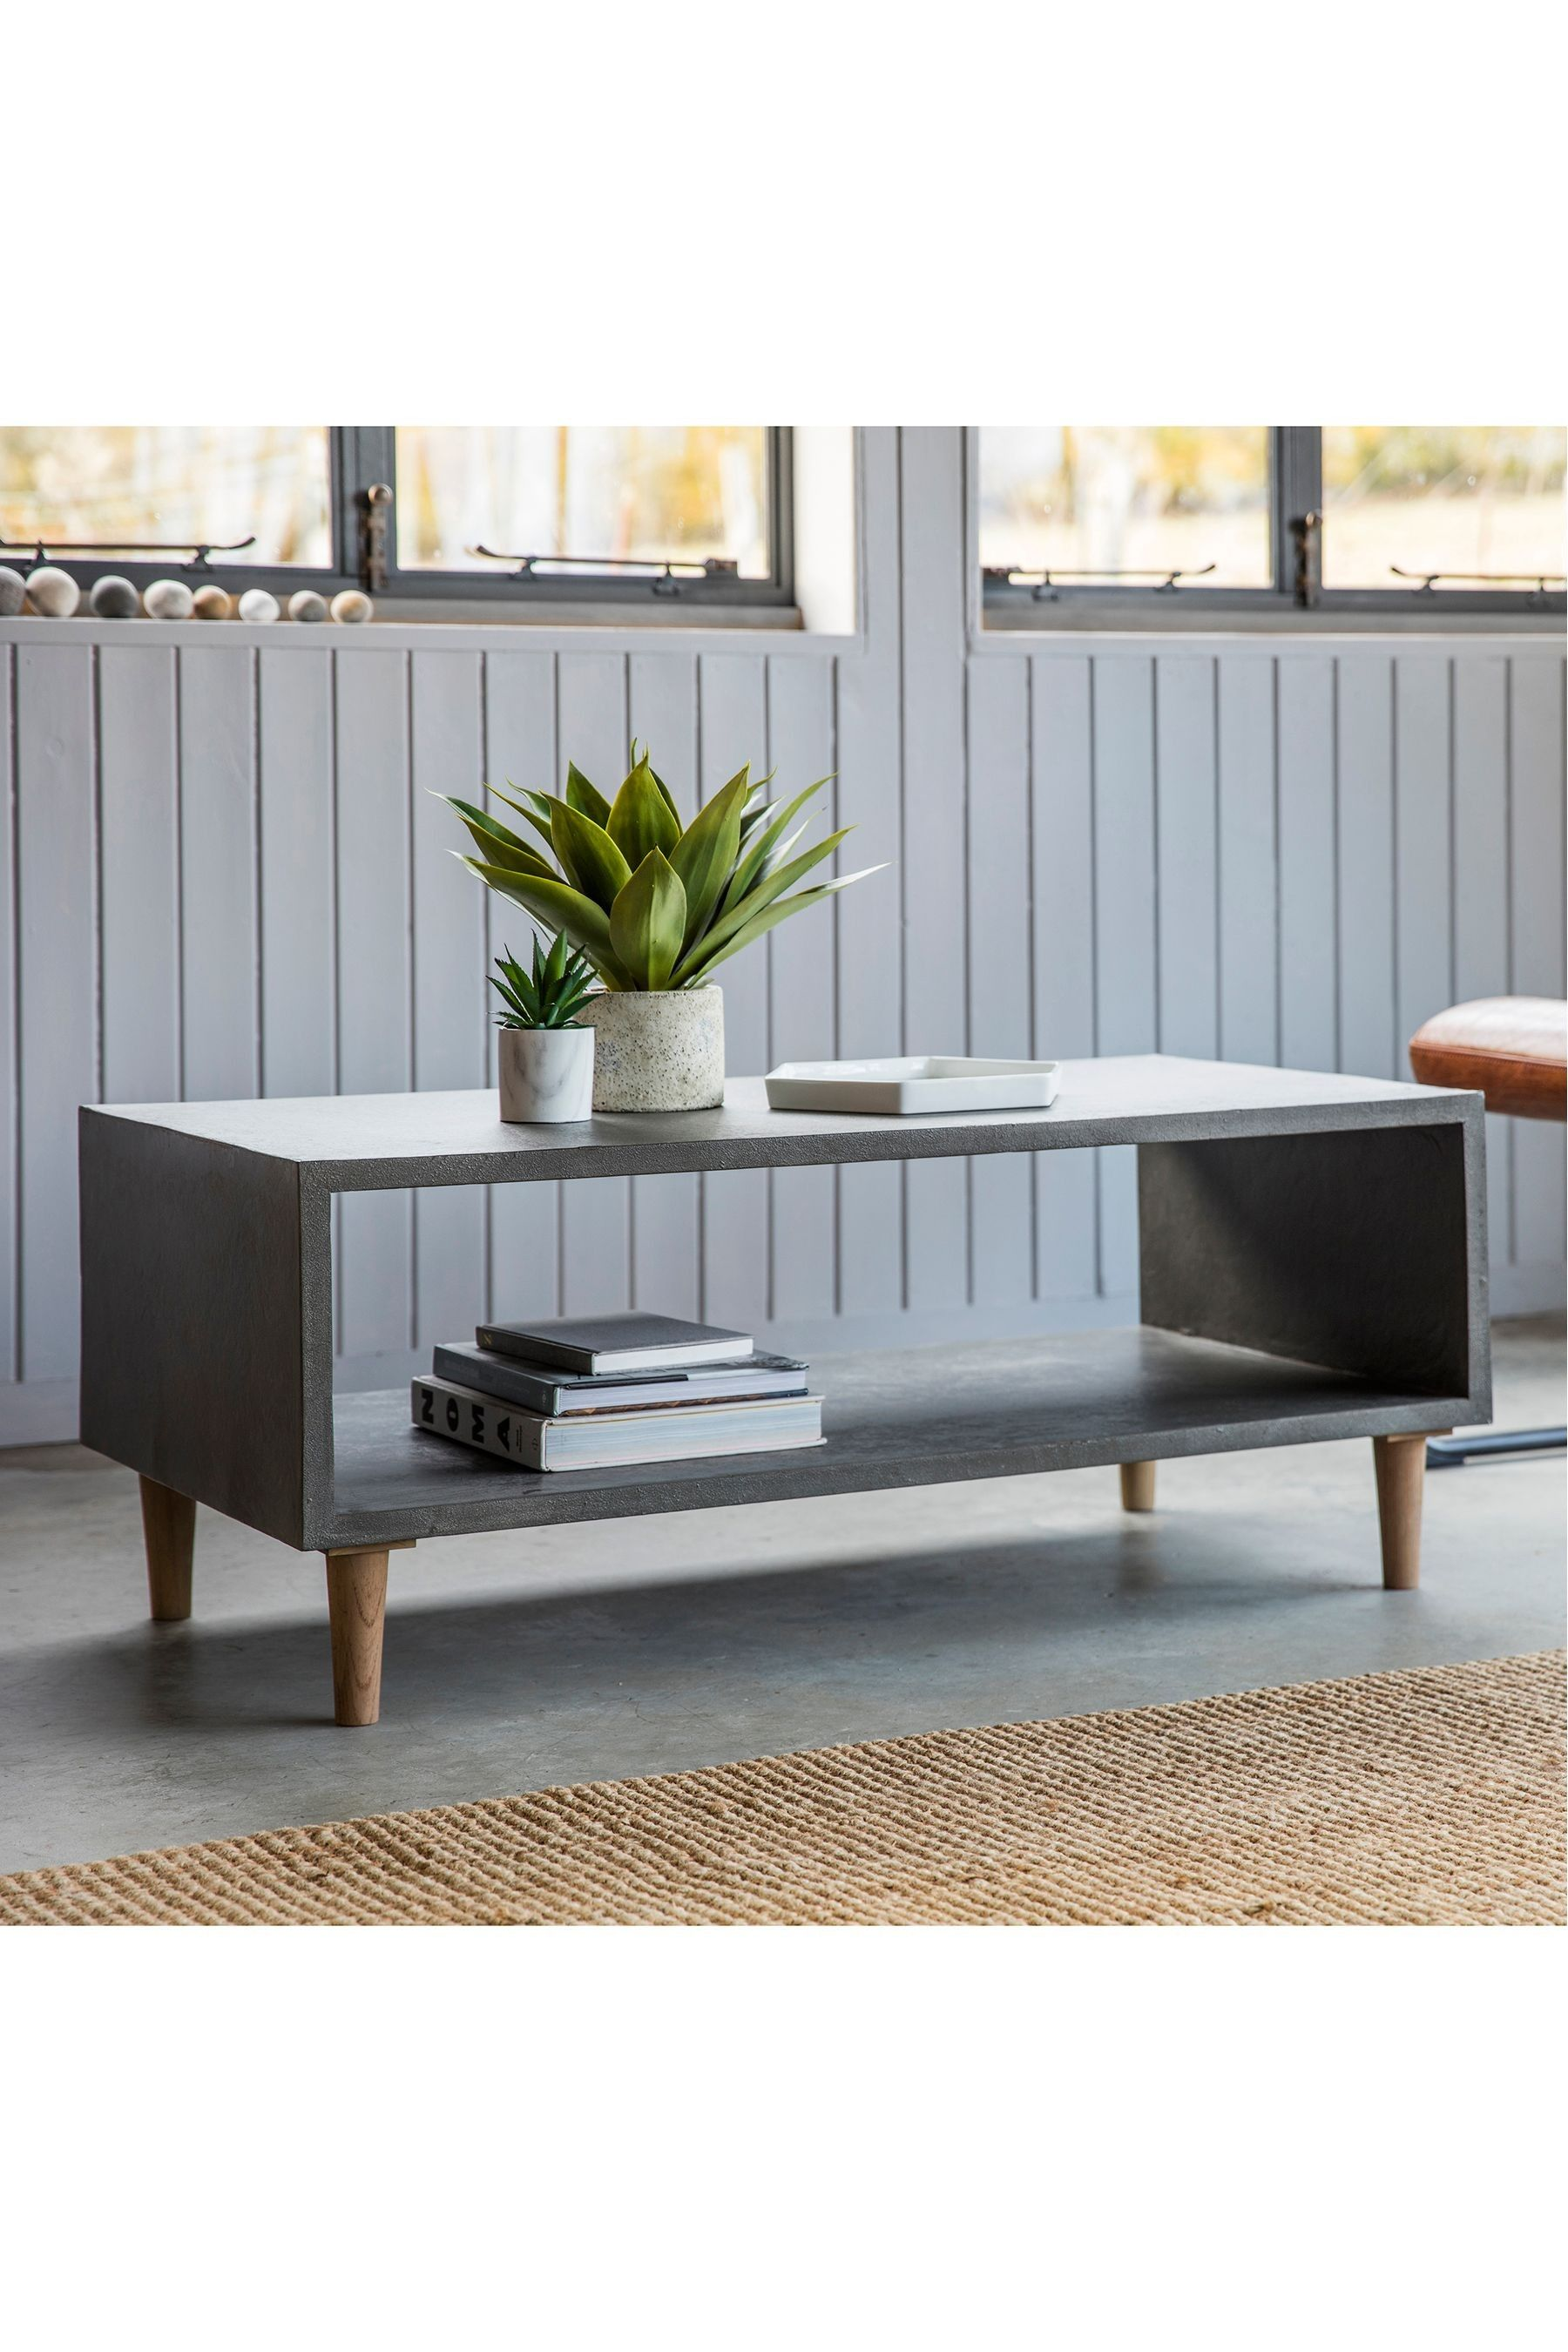 Buy Bergen Cube Coffee Table By Hudson Living From The Next Uk Online Shop Cube Coffee Table Coffee Table Lounge Interiors [ 2700 x 1800 Pixel ]